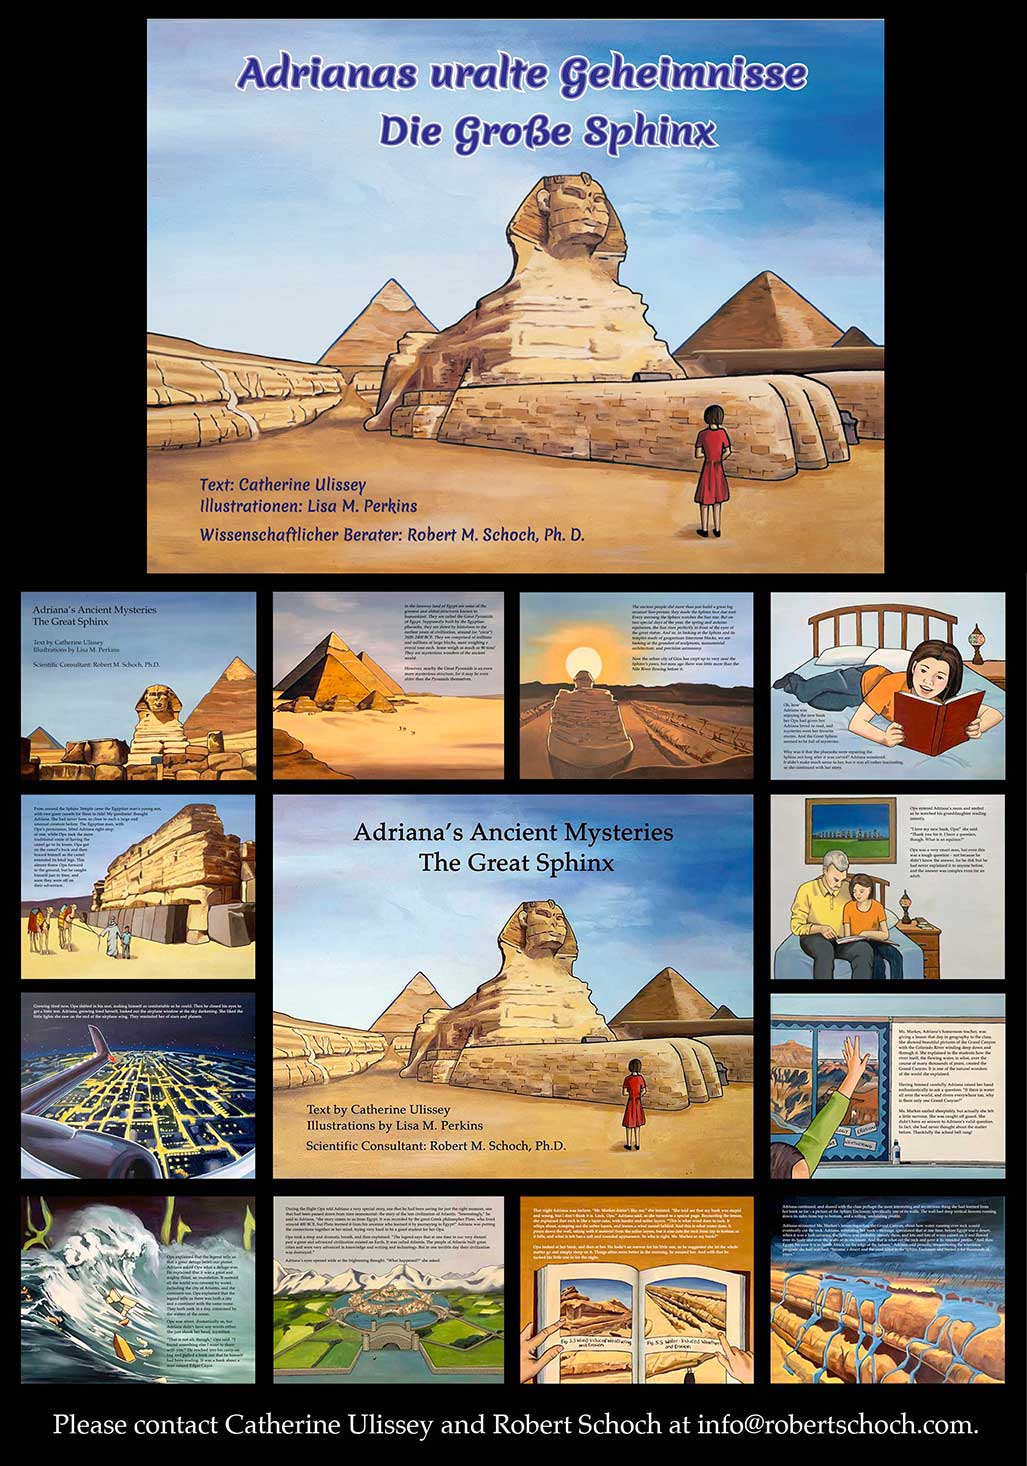 A montage of images from Adrianas Ancient Mysteries: The Great Sphinx